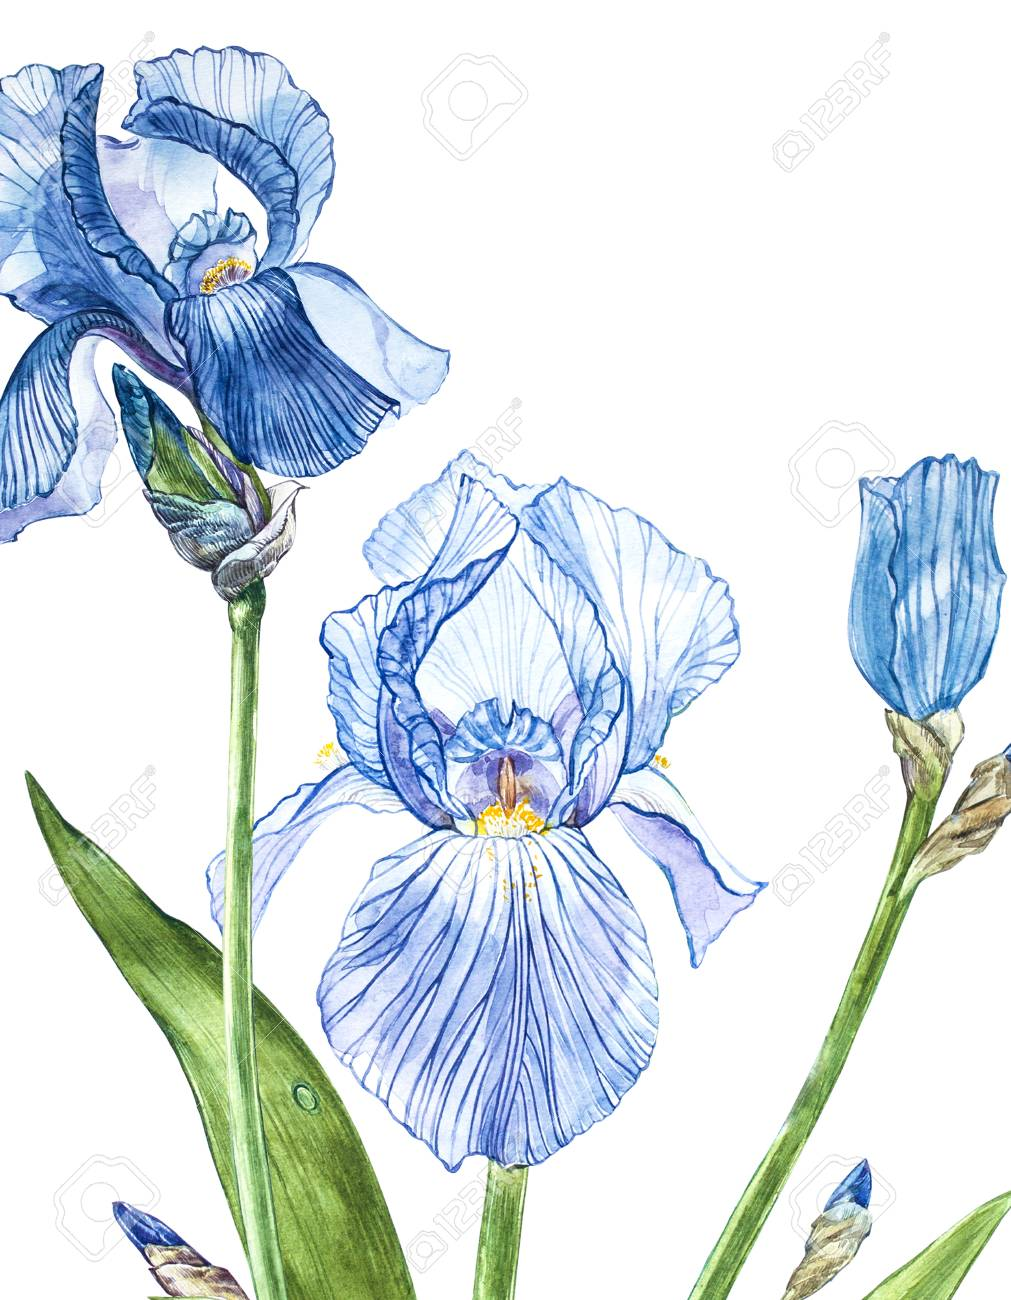 Flowers of iris watercolor hand drawn botanical illustration flowers of iris watercolor hand drawn botanical illustration of flowers isolated on a white background izmirmasajfo